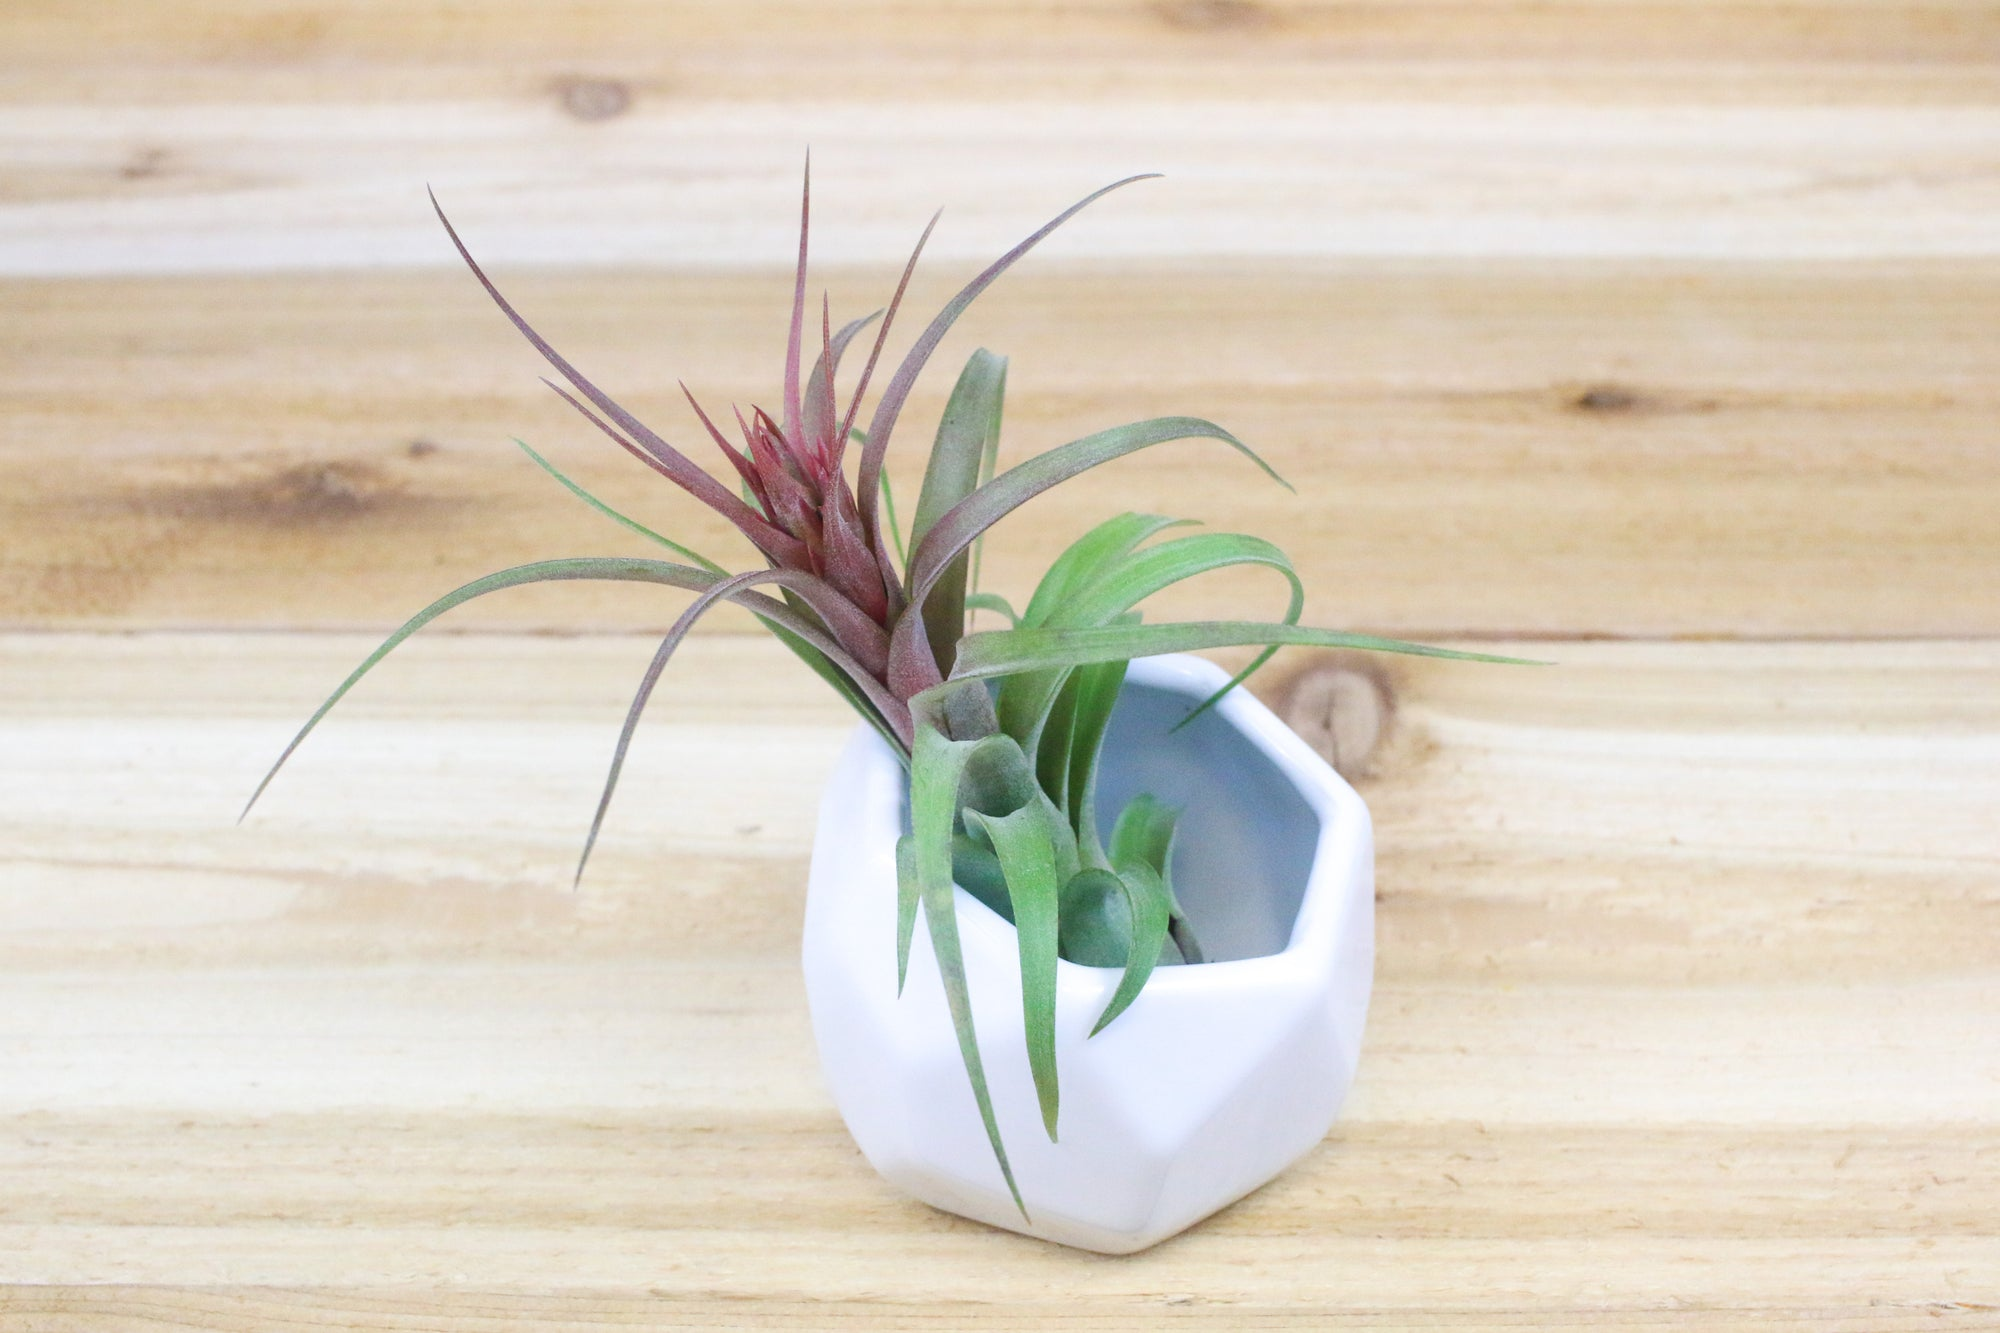 Wholesale: White Geometric Ceramic Container with Custom Tillandsia Air Plant [Min Order 12]